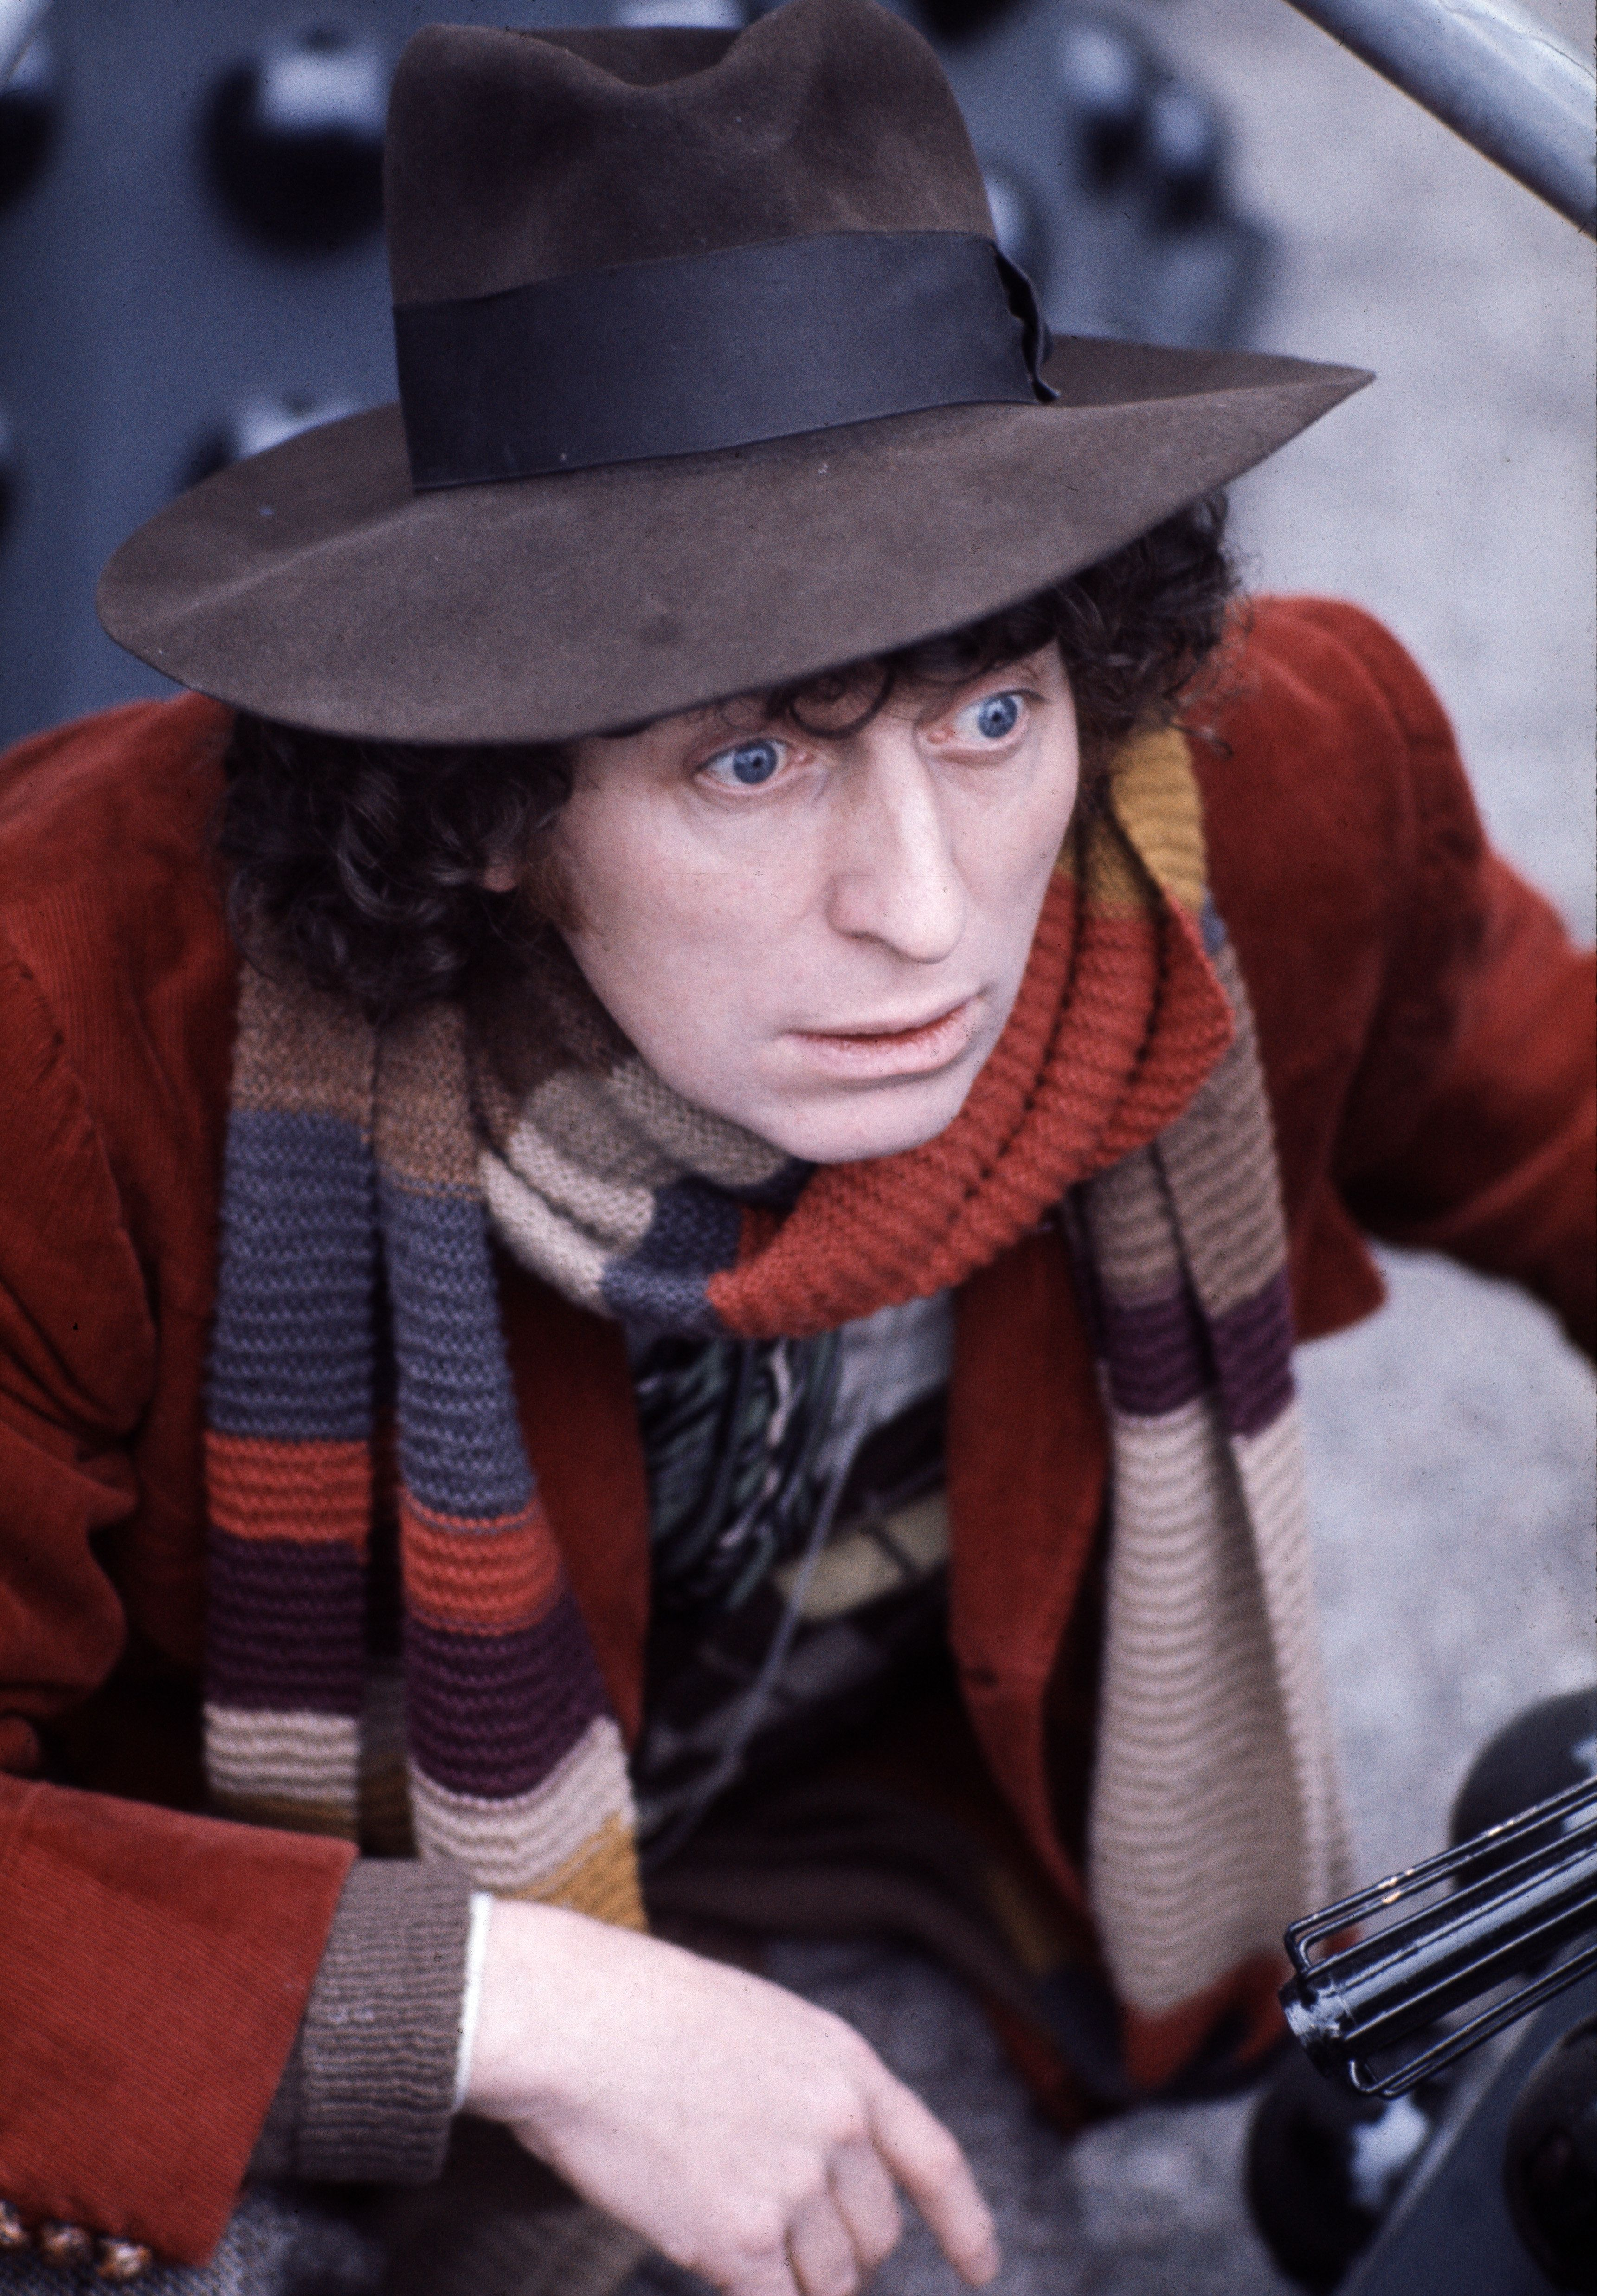 British actor Tom Baker in his best-known role as Dr Who, between two of his arch enemies, the Daleks at BBC TV Centre, London, 1974. (Photo by Michael Putland/Getty Images)